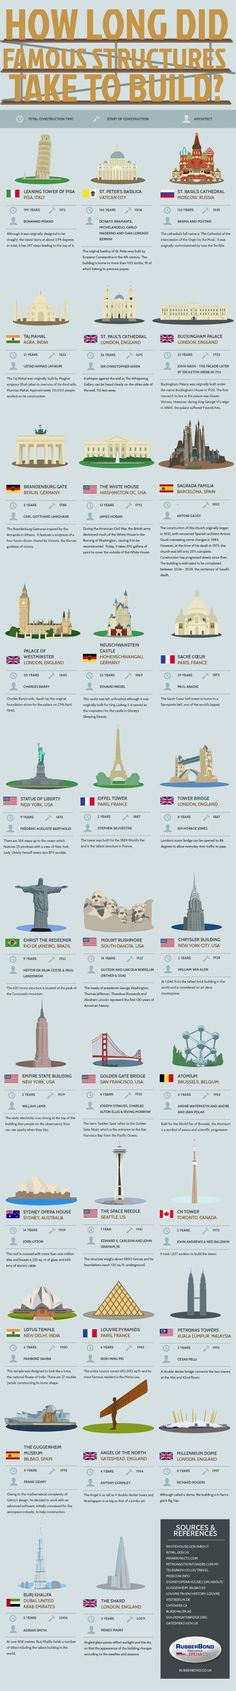 How Long Did Famous Structures Take to Build? INTRIGUING ARCHITECTURE long pin full of information about history of famous buildings across the centuries. Famous Structures, Famous Buildings, World History, Art History, Build A Better World, Thinking Day, Civil Engineering, Engineering Science, Interesting History